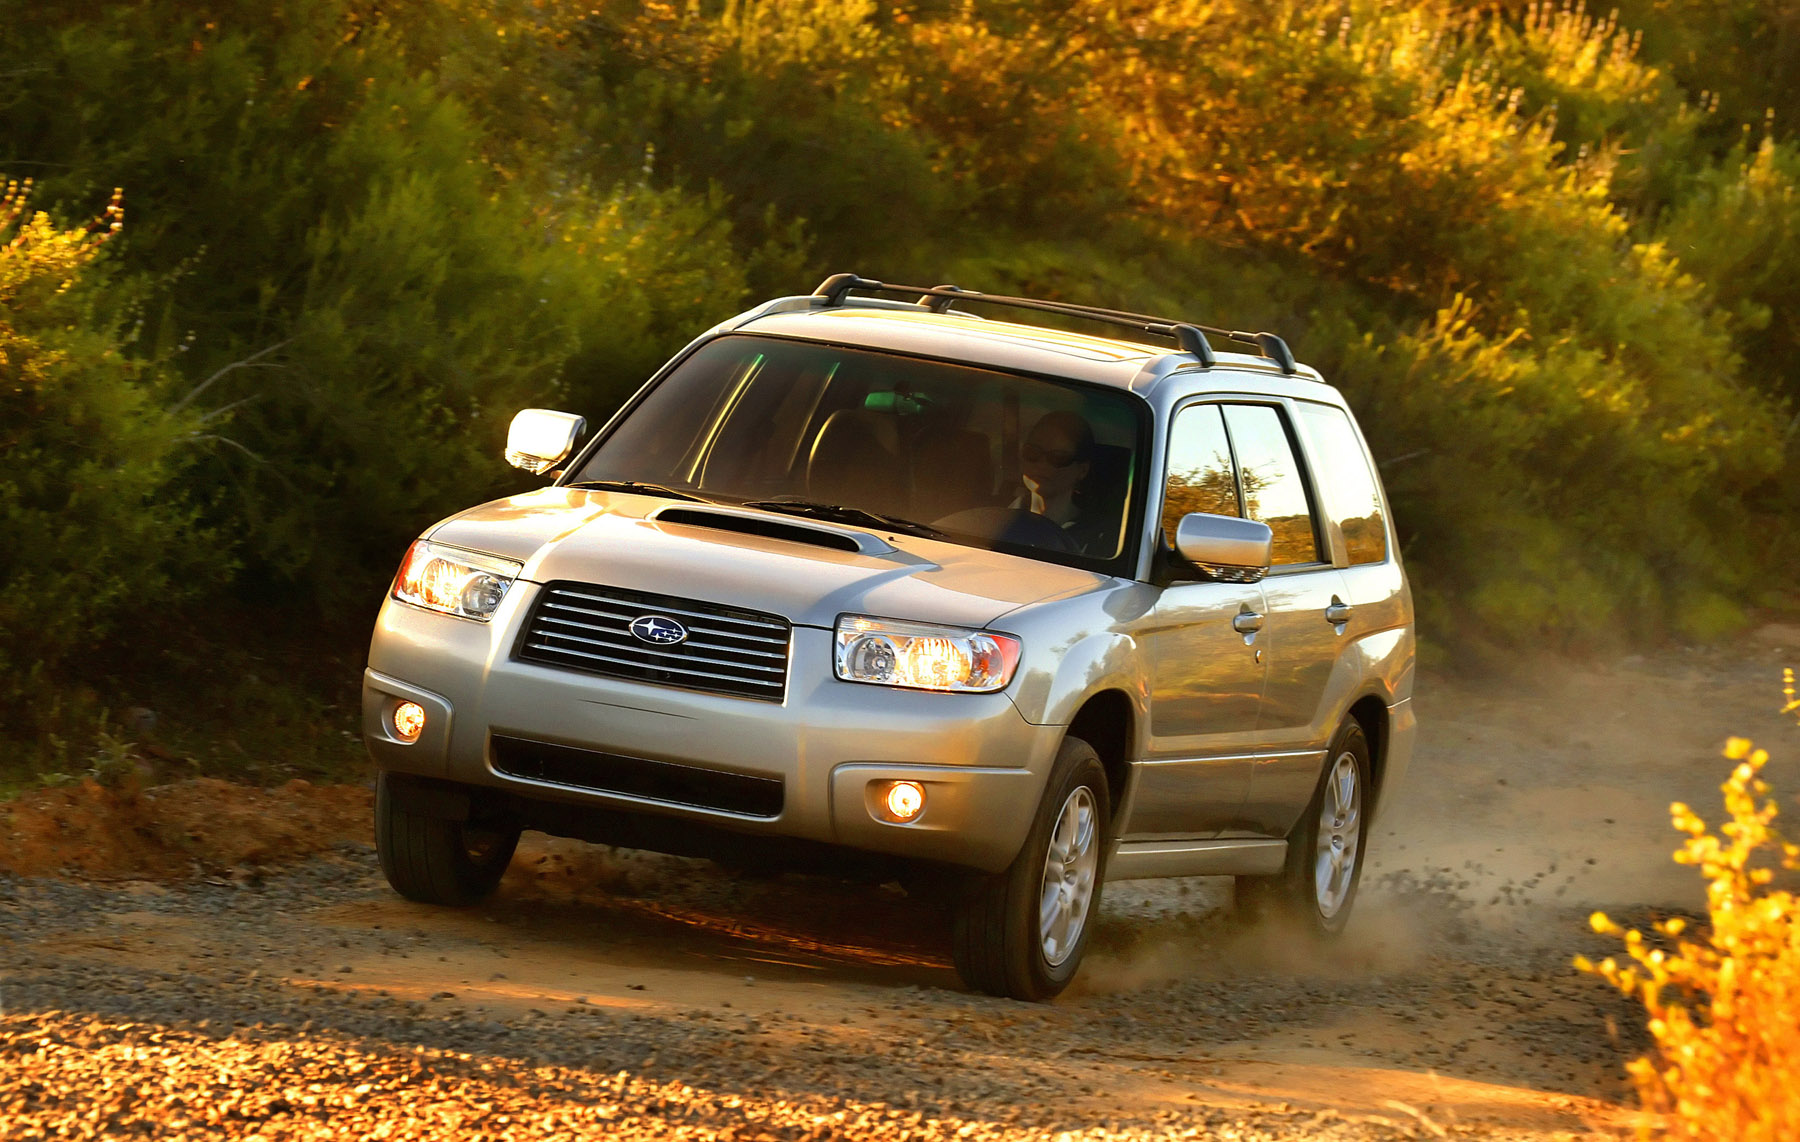 subaru forester technical specifications and fuel economy. Black Bedroom Furniture Sets. Home Design Ideas